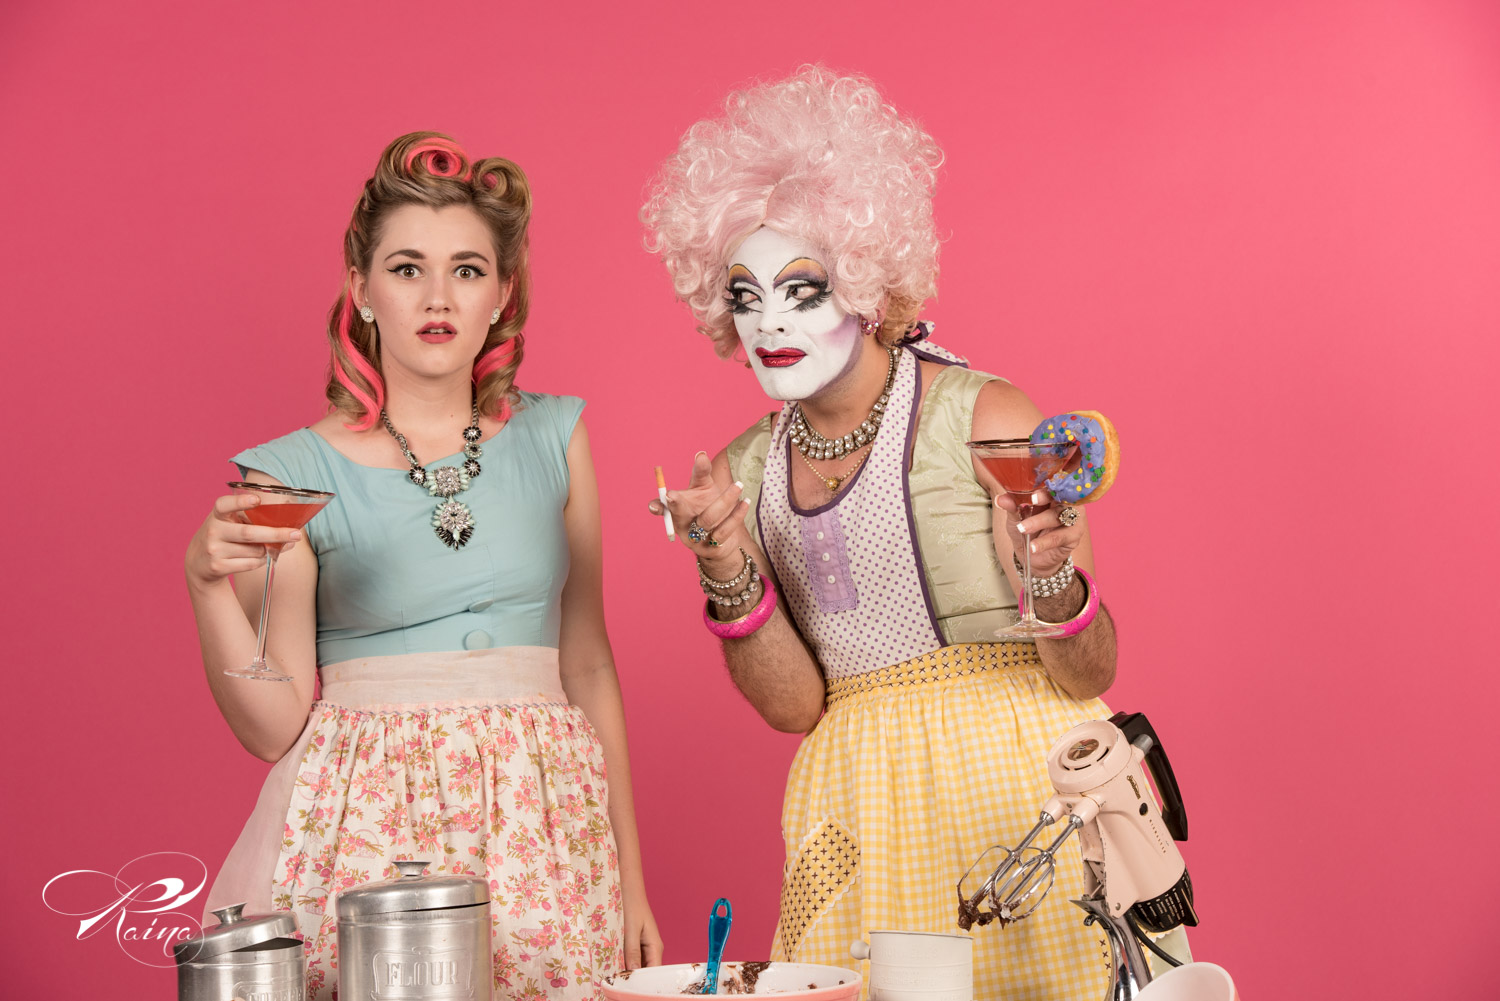 ©Raina Stinson Photography-Housewives gone mad-3.jpg